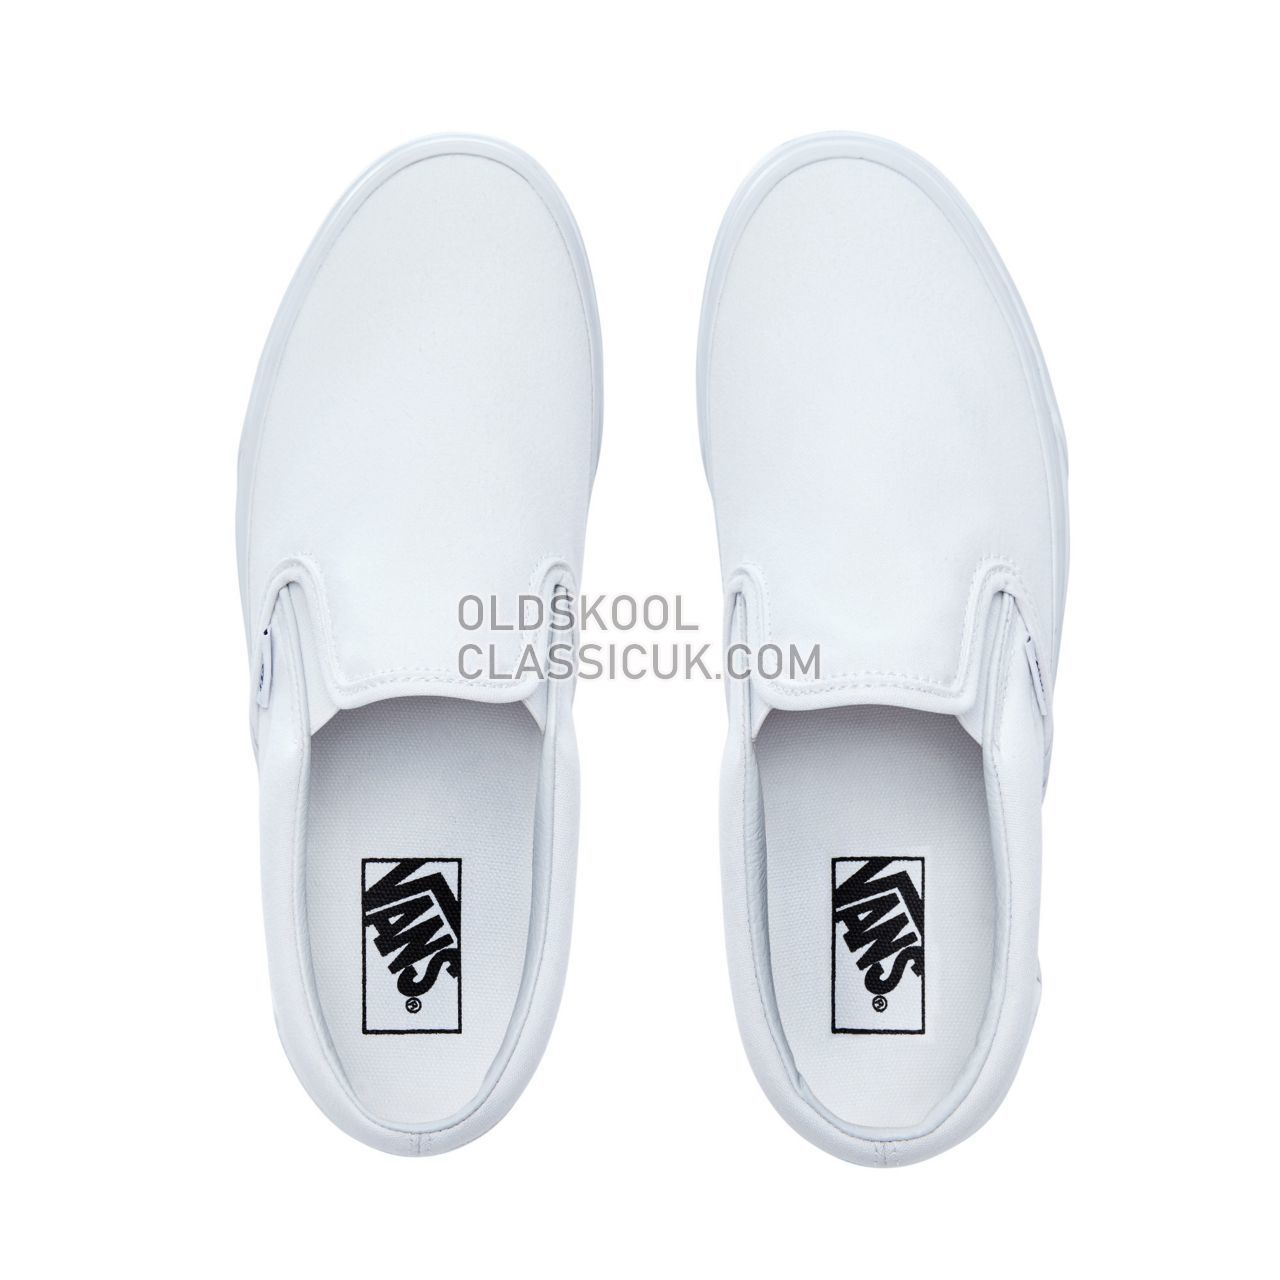 Vans Classic Slip-On Sneakers Mens True White VN000EYEW00 Shoes